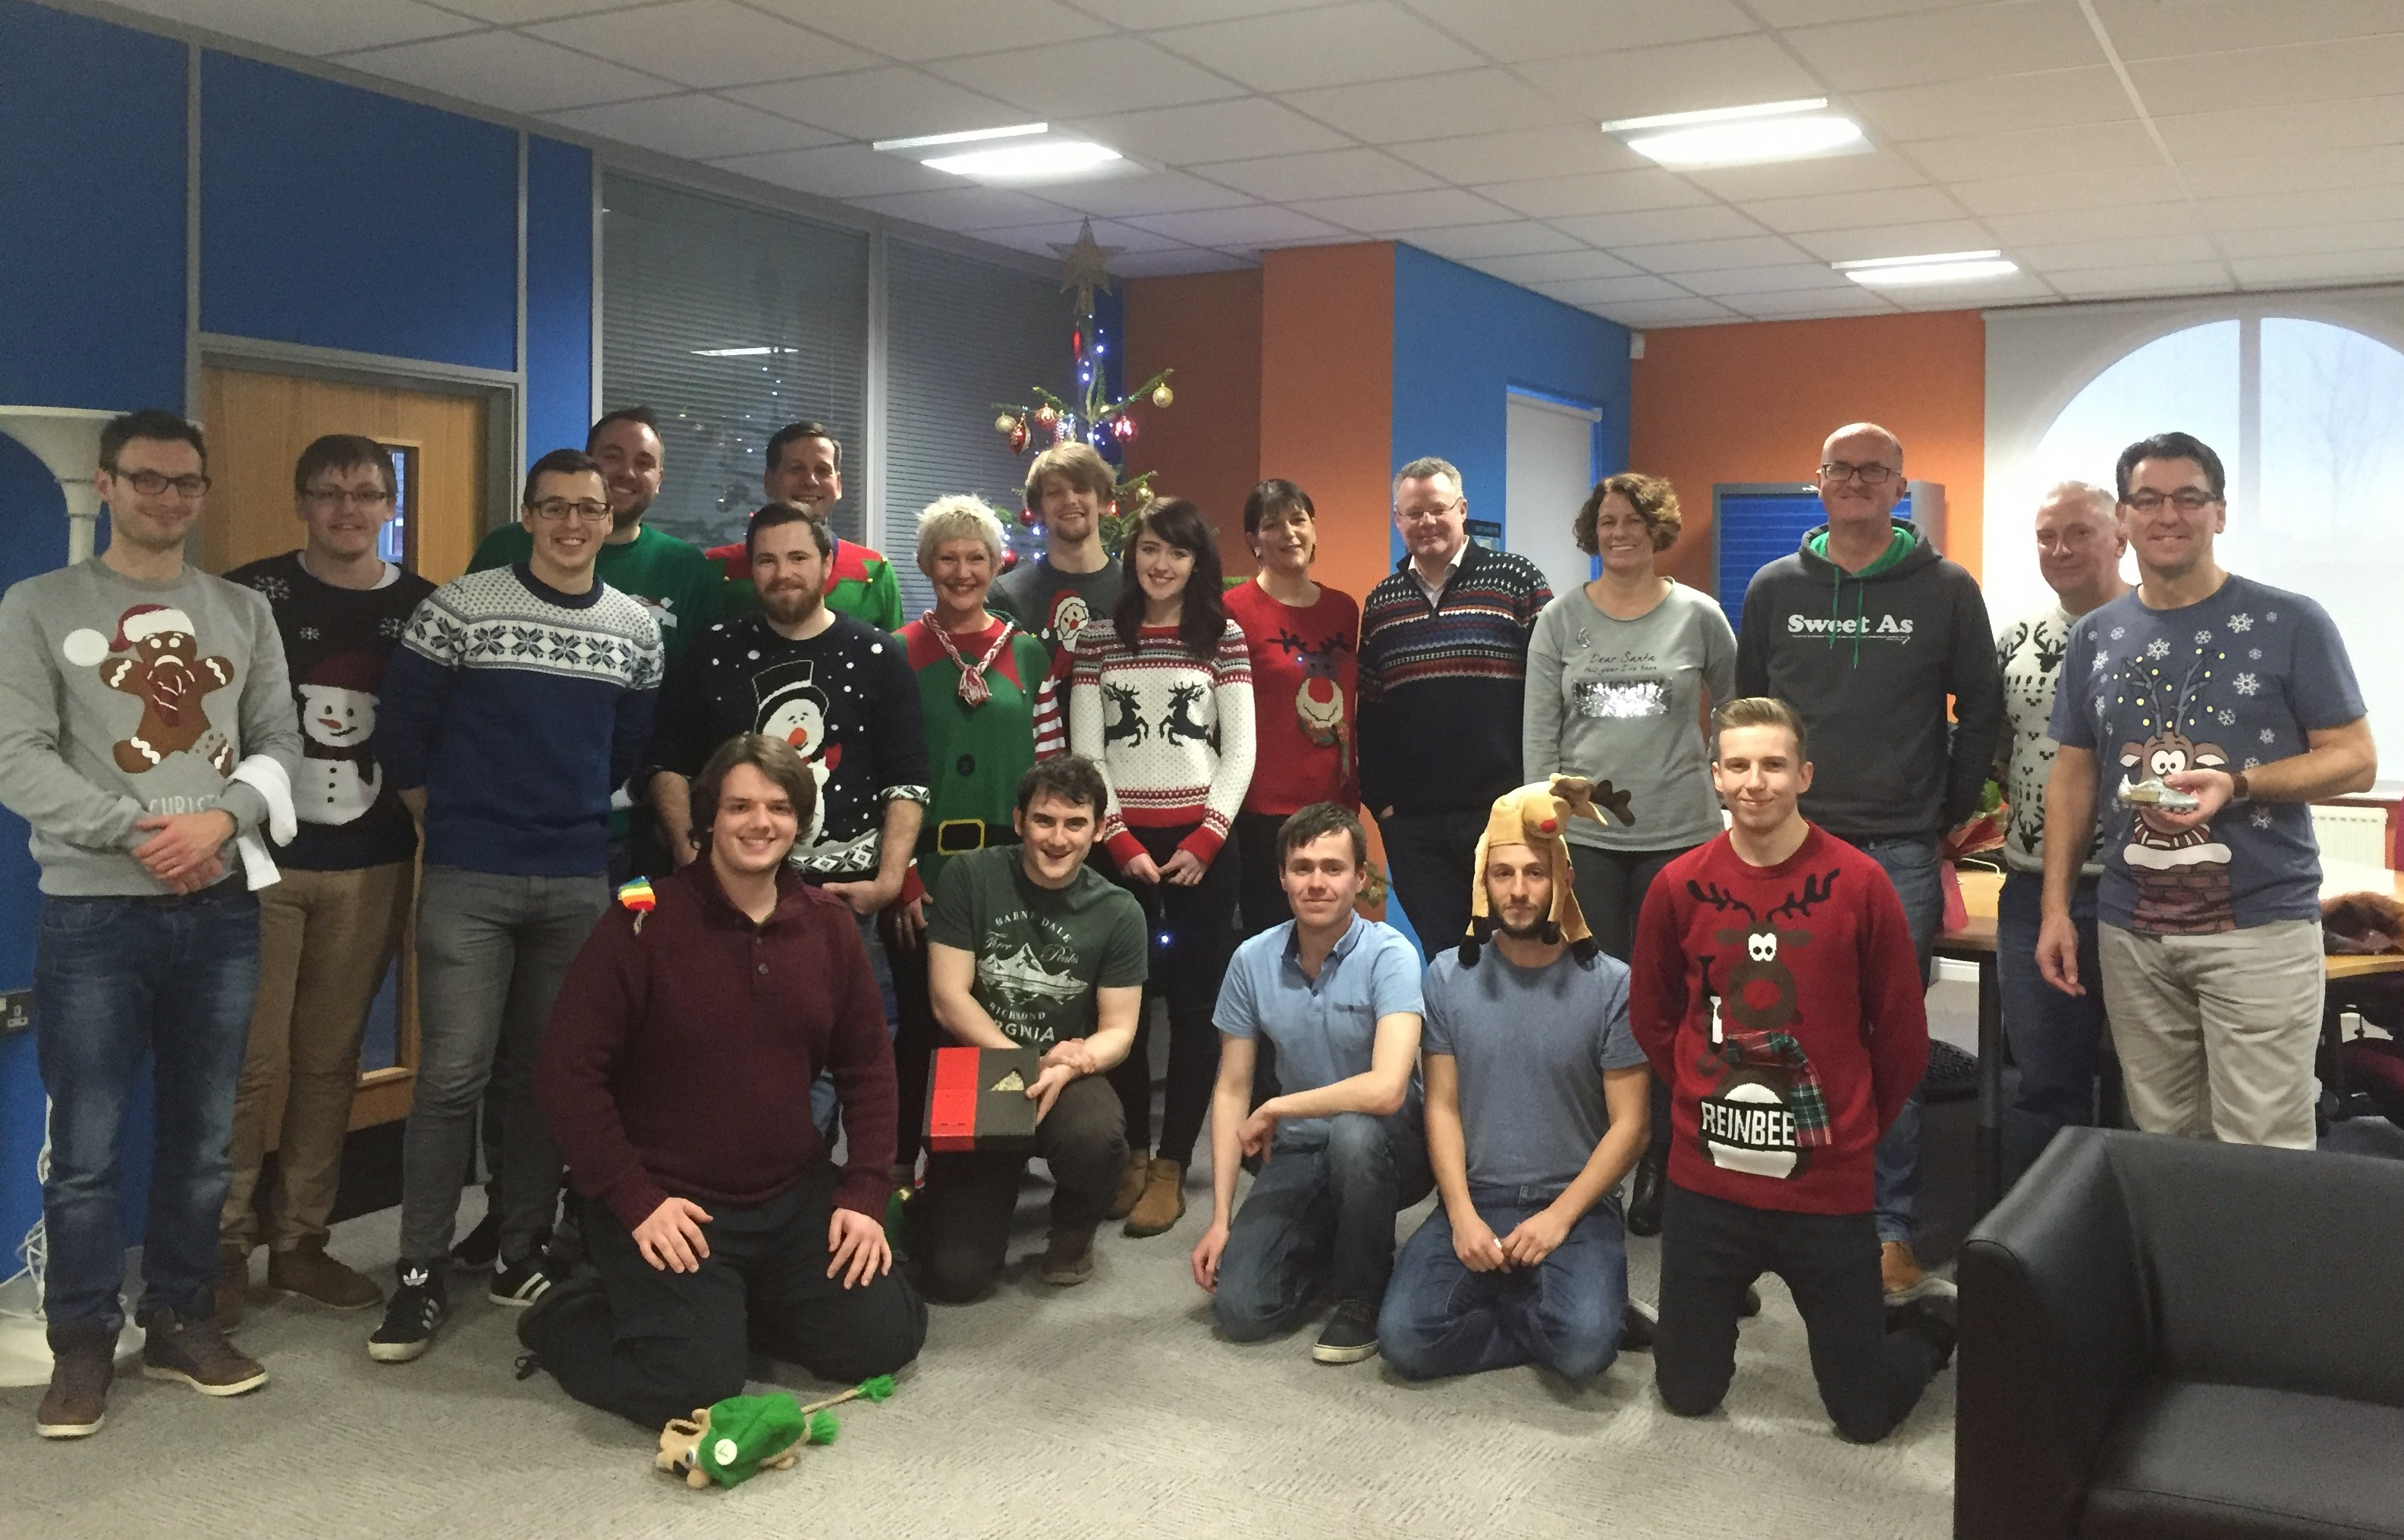 Picture of the staff at Connexica wearing Christmas jumpers